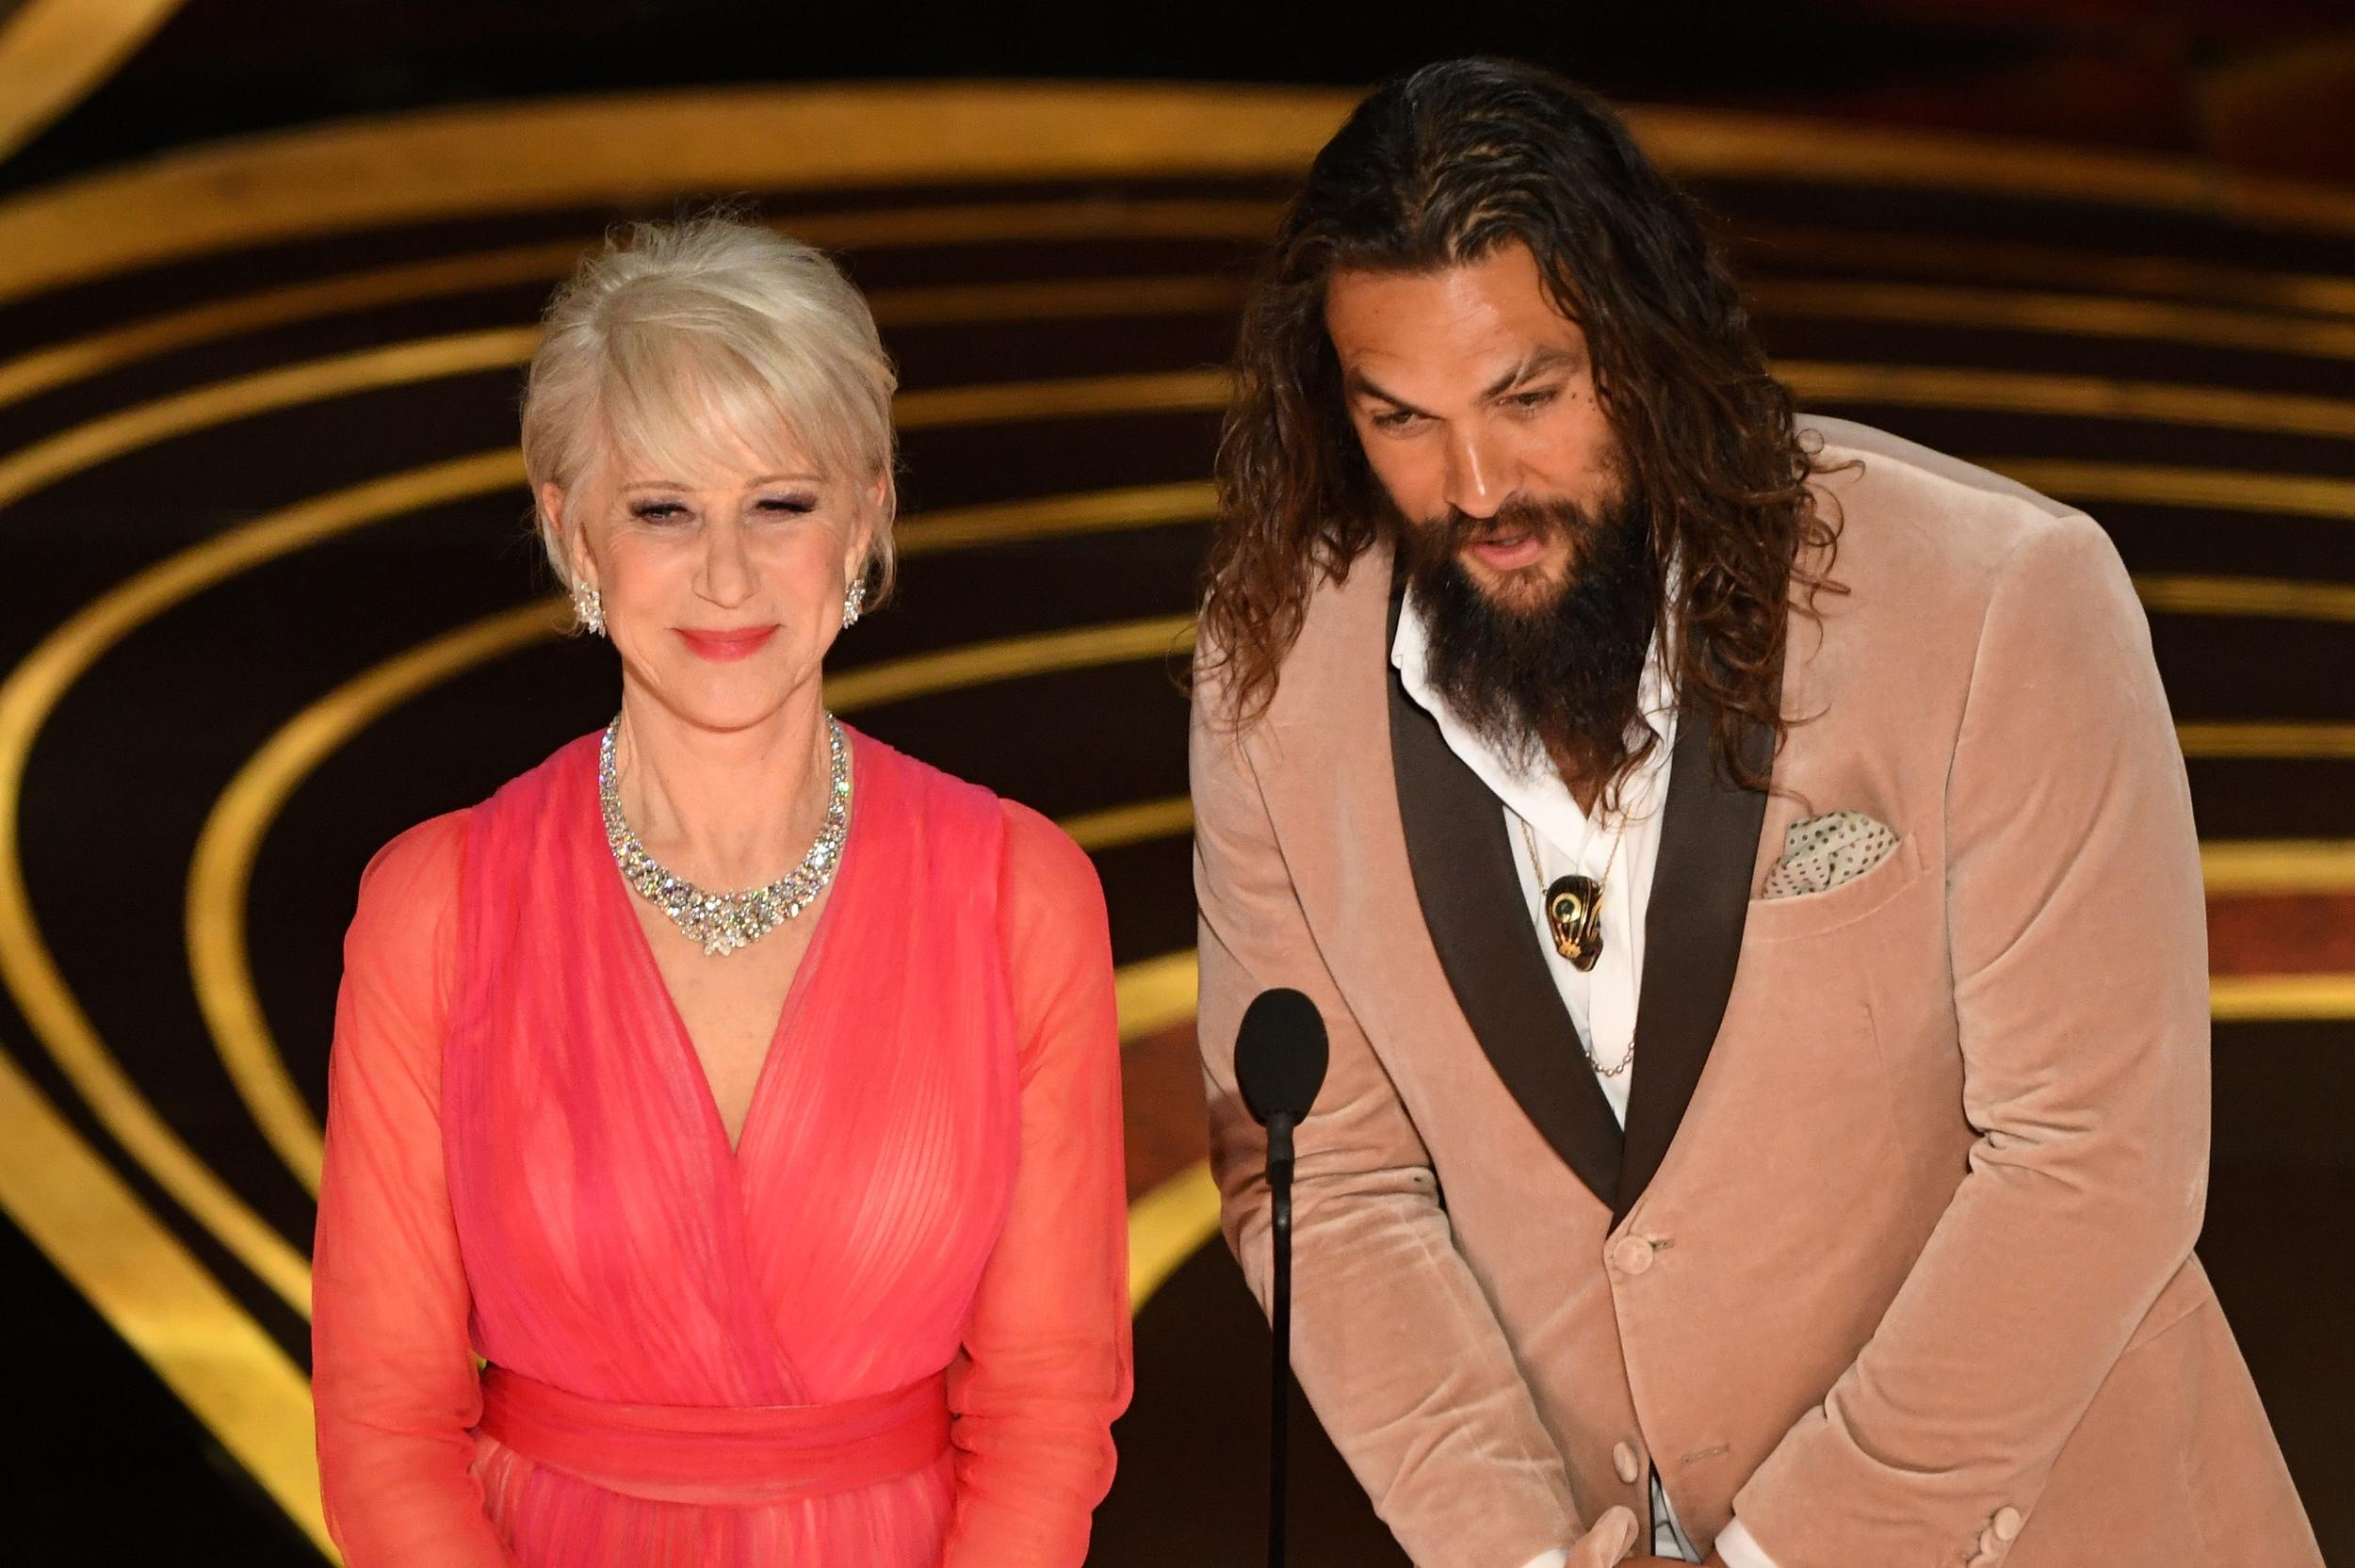 British actress Helen Mirren and actor Jason Mamoa present an award during the 91st Annual Academy Awards at the Dolby Theatre in Hollywood, California on February 24, 2019. (Photo by VALERIE MACON / AFP)        (Photo credit should read VALERIE MACON/AFP/Getty Images)